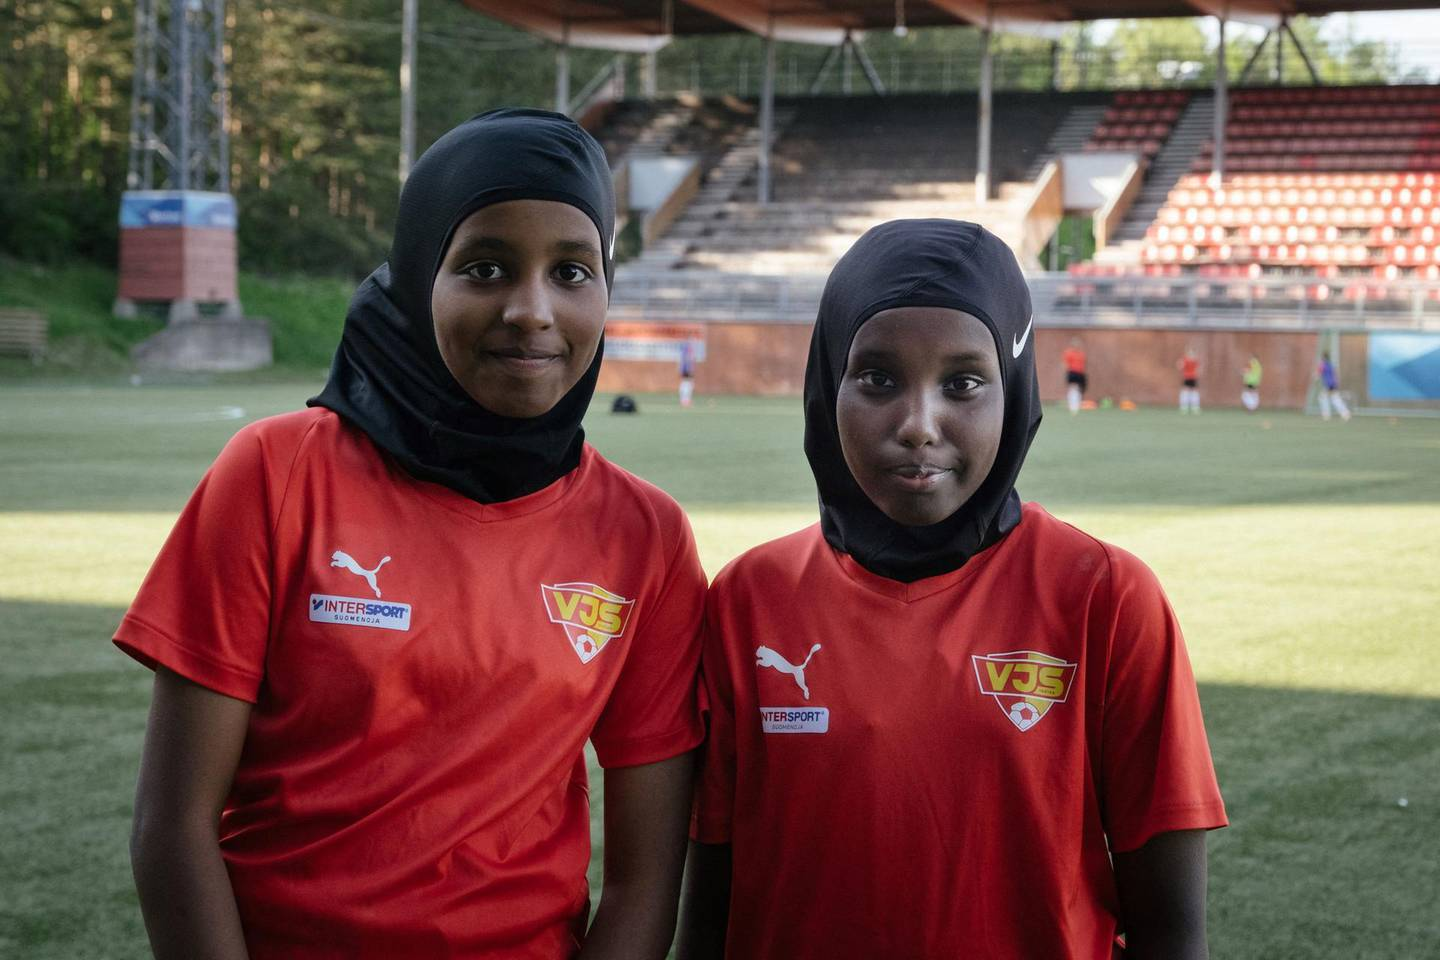 """Kamila Nuh (L) and Nasro Bahnaan Hulbade, both 13 years old, pose for photos at the beginning of a football training session at the MUP Stadium in Vantaa, Finland, on June 1, 2021.   Finland's football association has begun offering a free """"sports hijab"""" to any player who wants one, in a move designed to attract a greater diversity of players into the sport. So far, the FA has distributed """"dozens"""" of the headscarves, which are made out of technical, stretchy fabric, Heidi Pihlaja, head of development of women and girls' football, told AFP.   / AFP / Alessandro RAMPAZZO"""